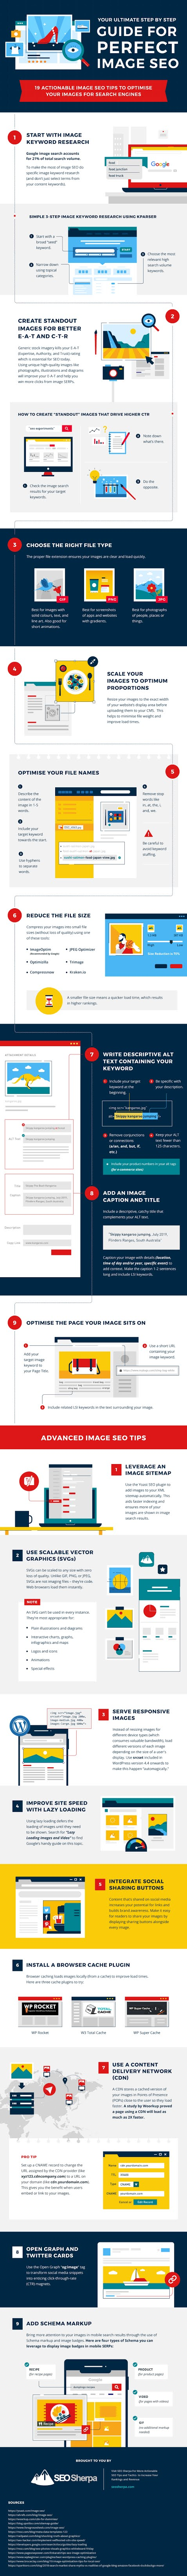 The Ultimate Step-by-Step-Guide For Ranking In Google Images #infographic